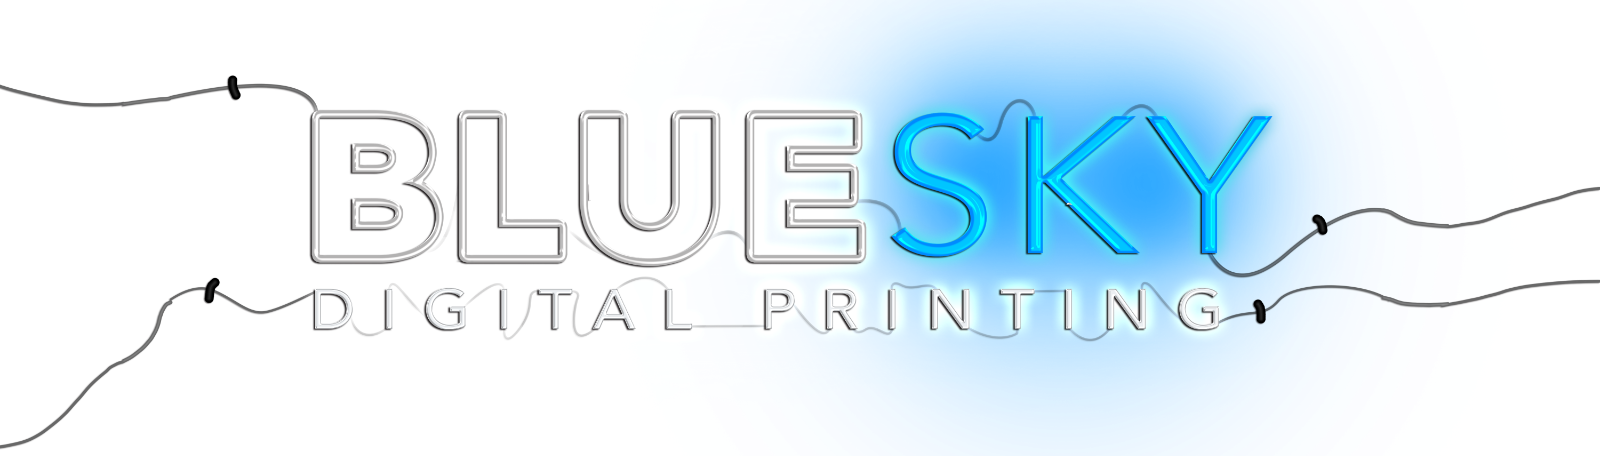 Blue Sky Digital Printing